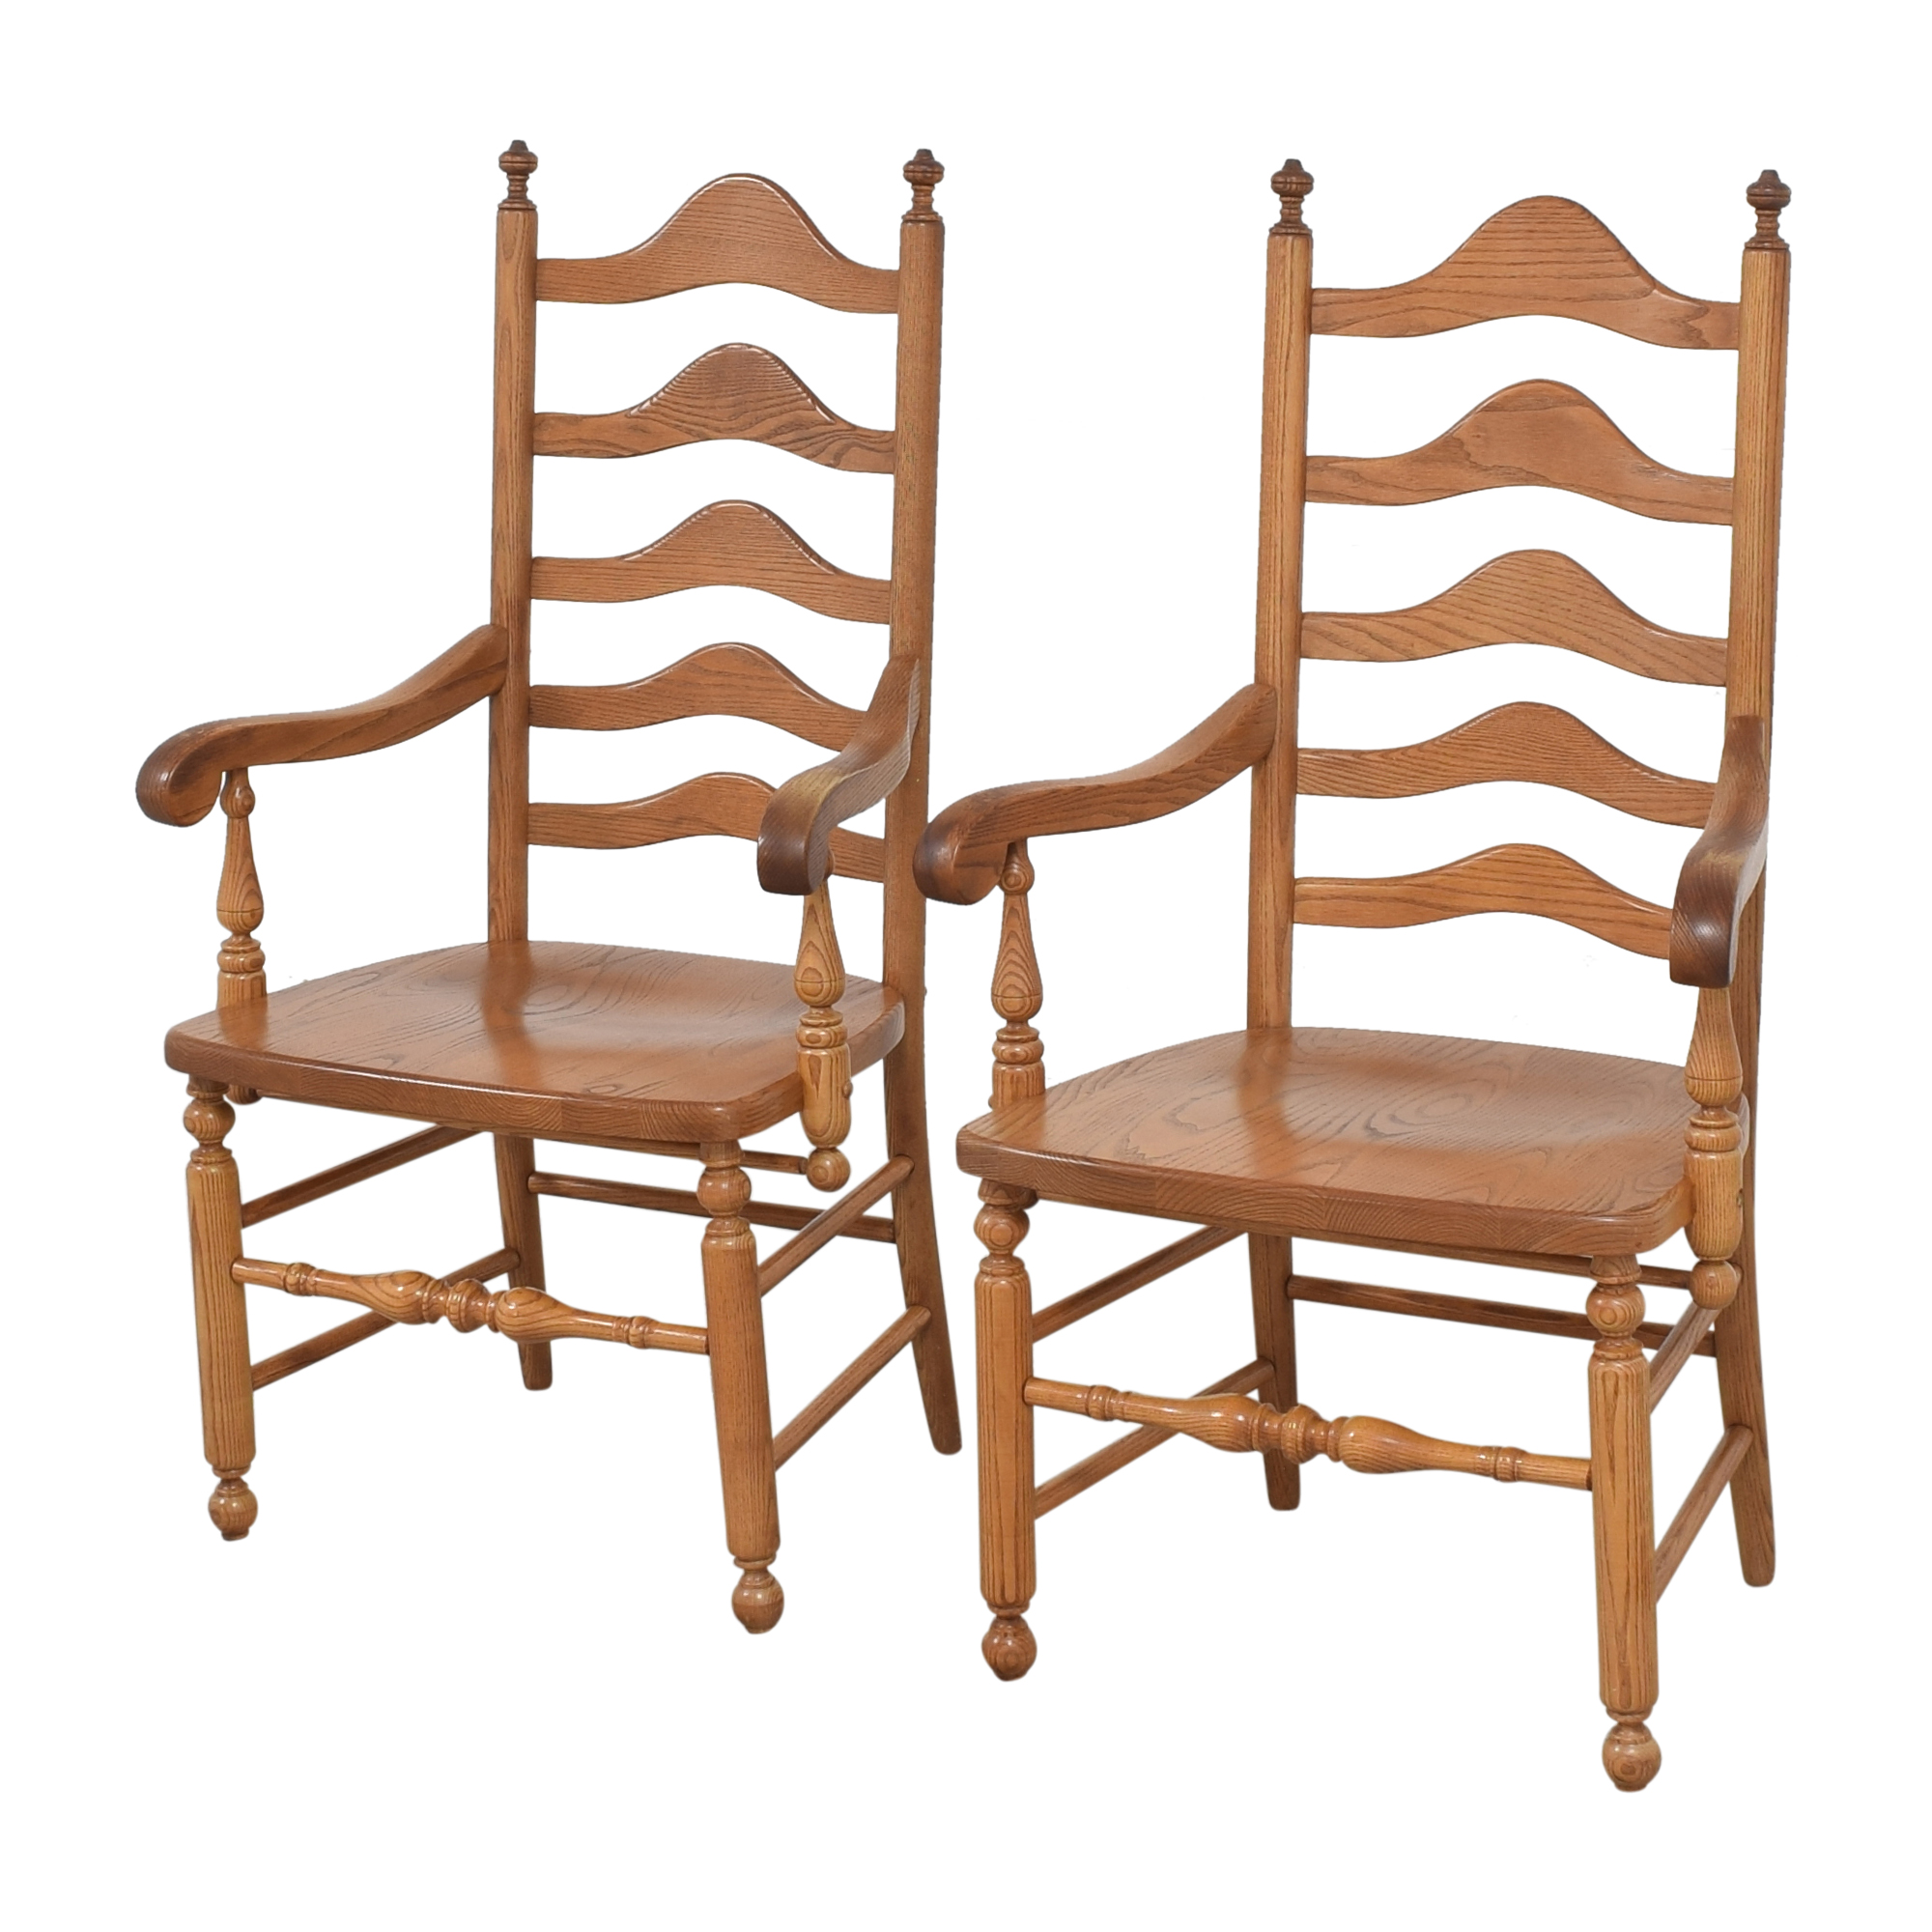 buy S. Bent & Bros Ladder Back Dining Arm Chairs S. Bent & Bros Dining Chairs